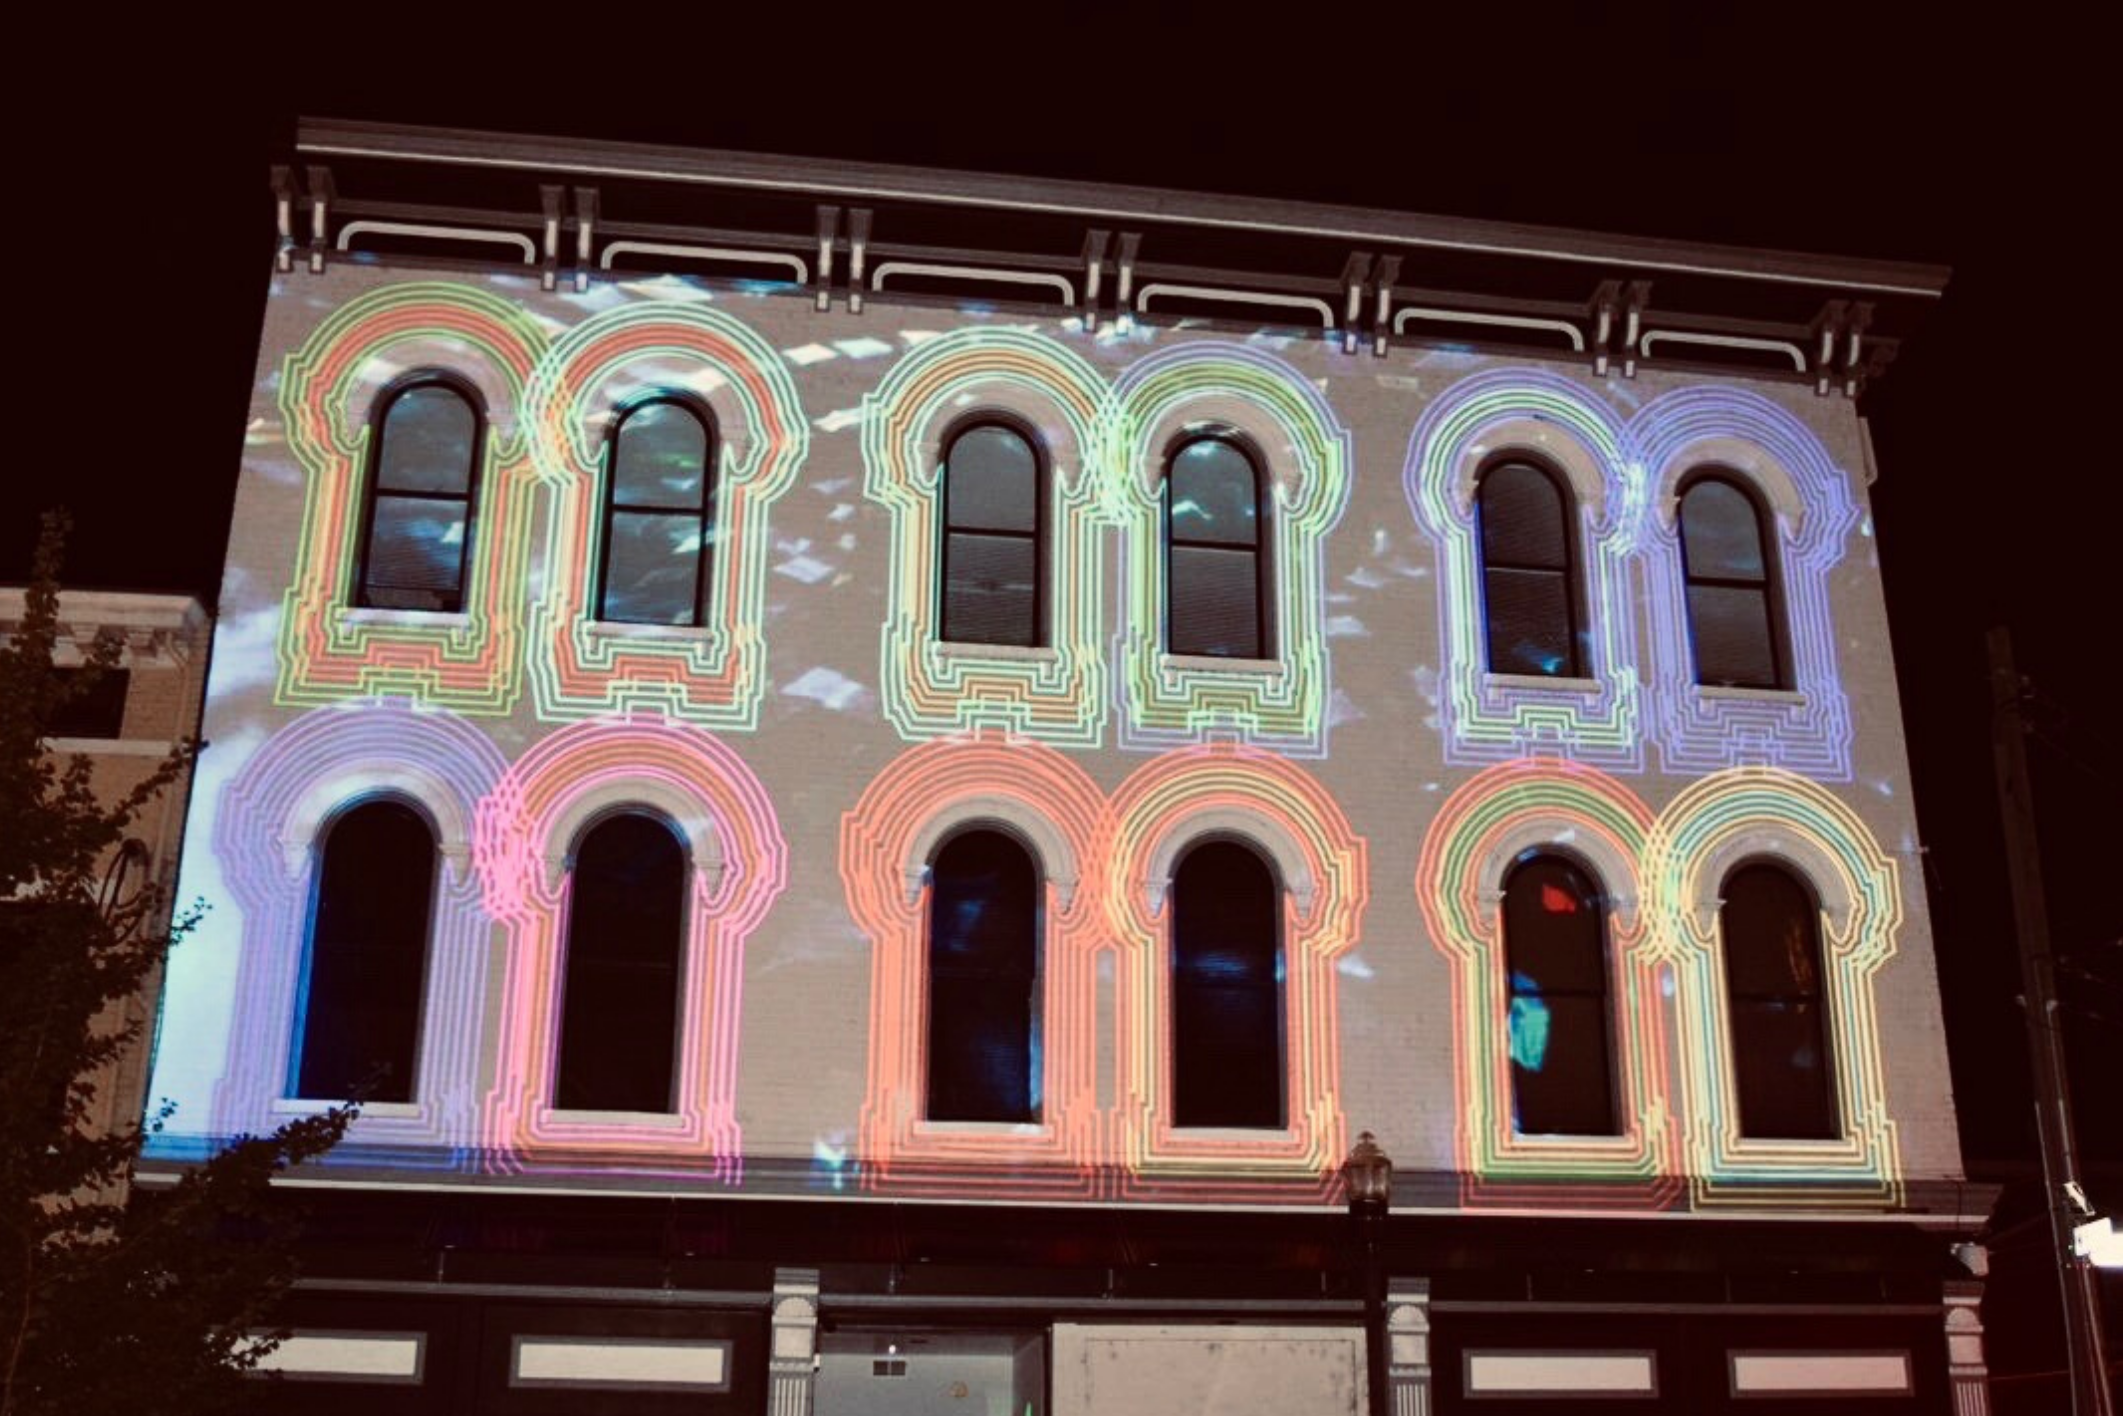 Building with light projections.